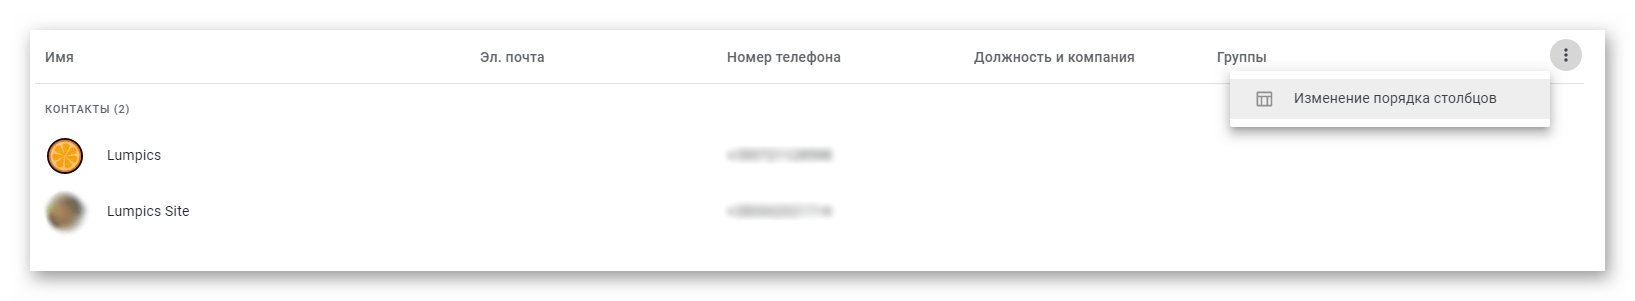 Категории информации о контактах в браузере Google Chrome